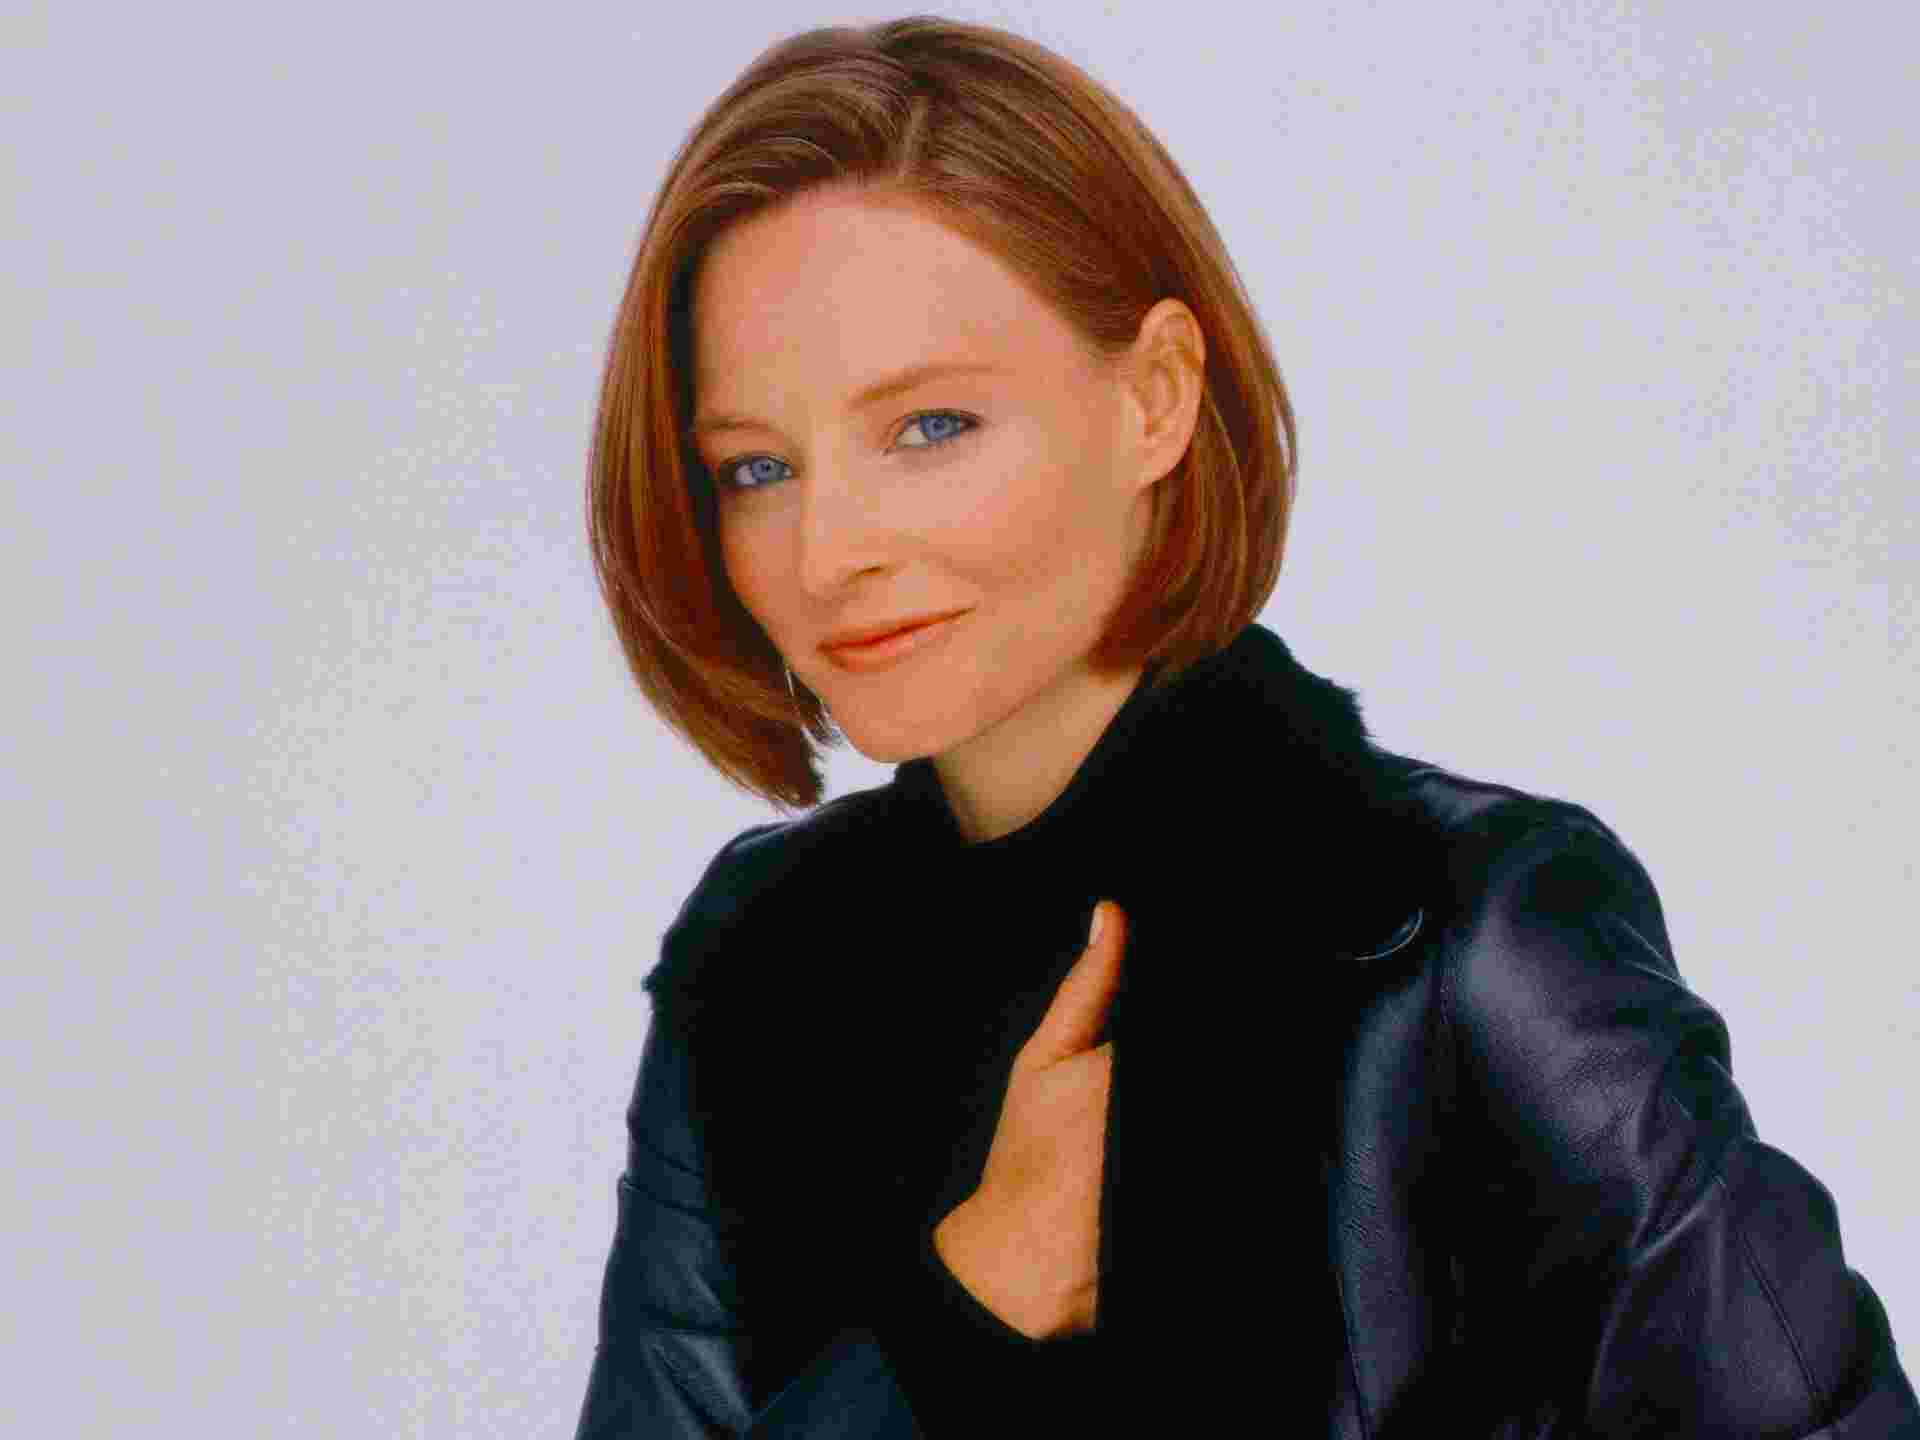 1920x1440 - Jodie Foster Wallpapers 1